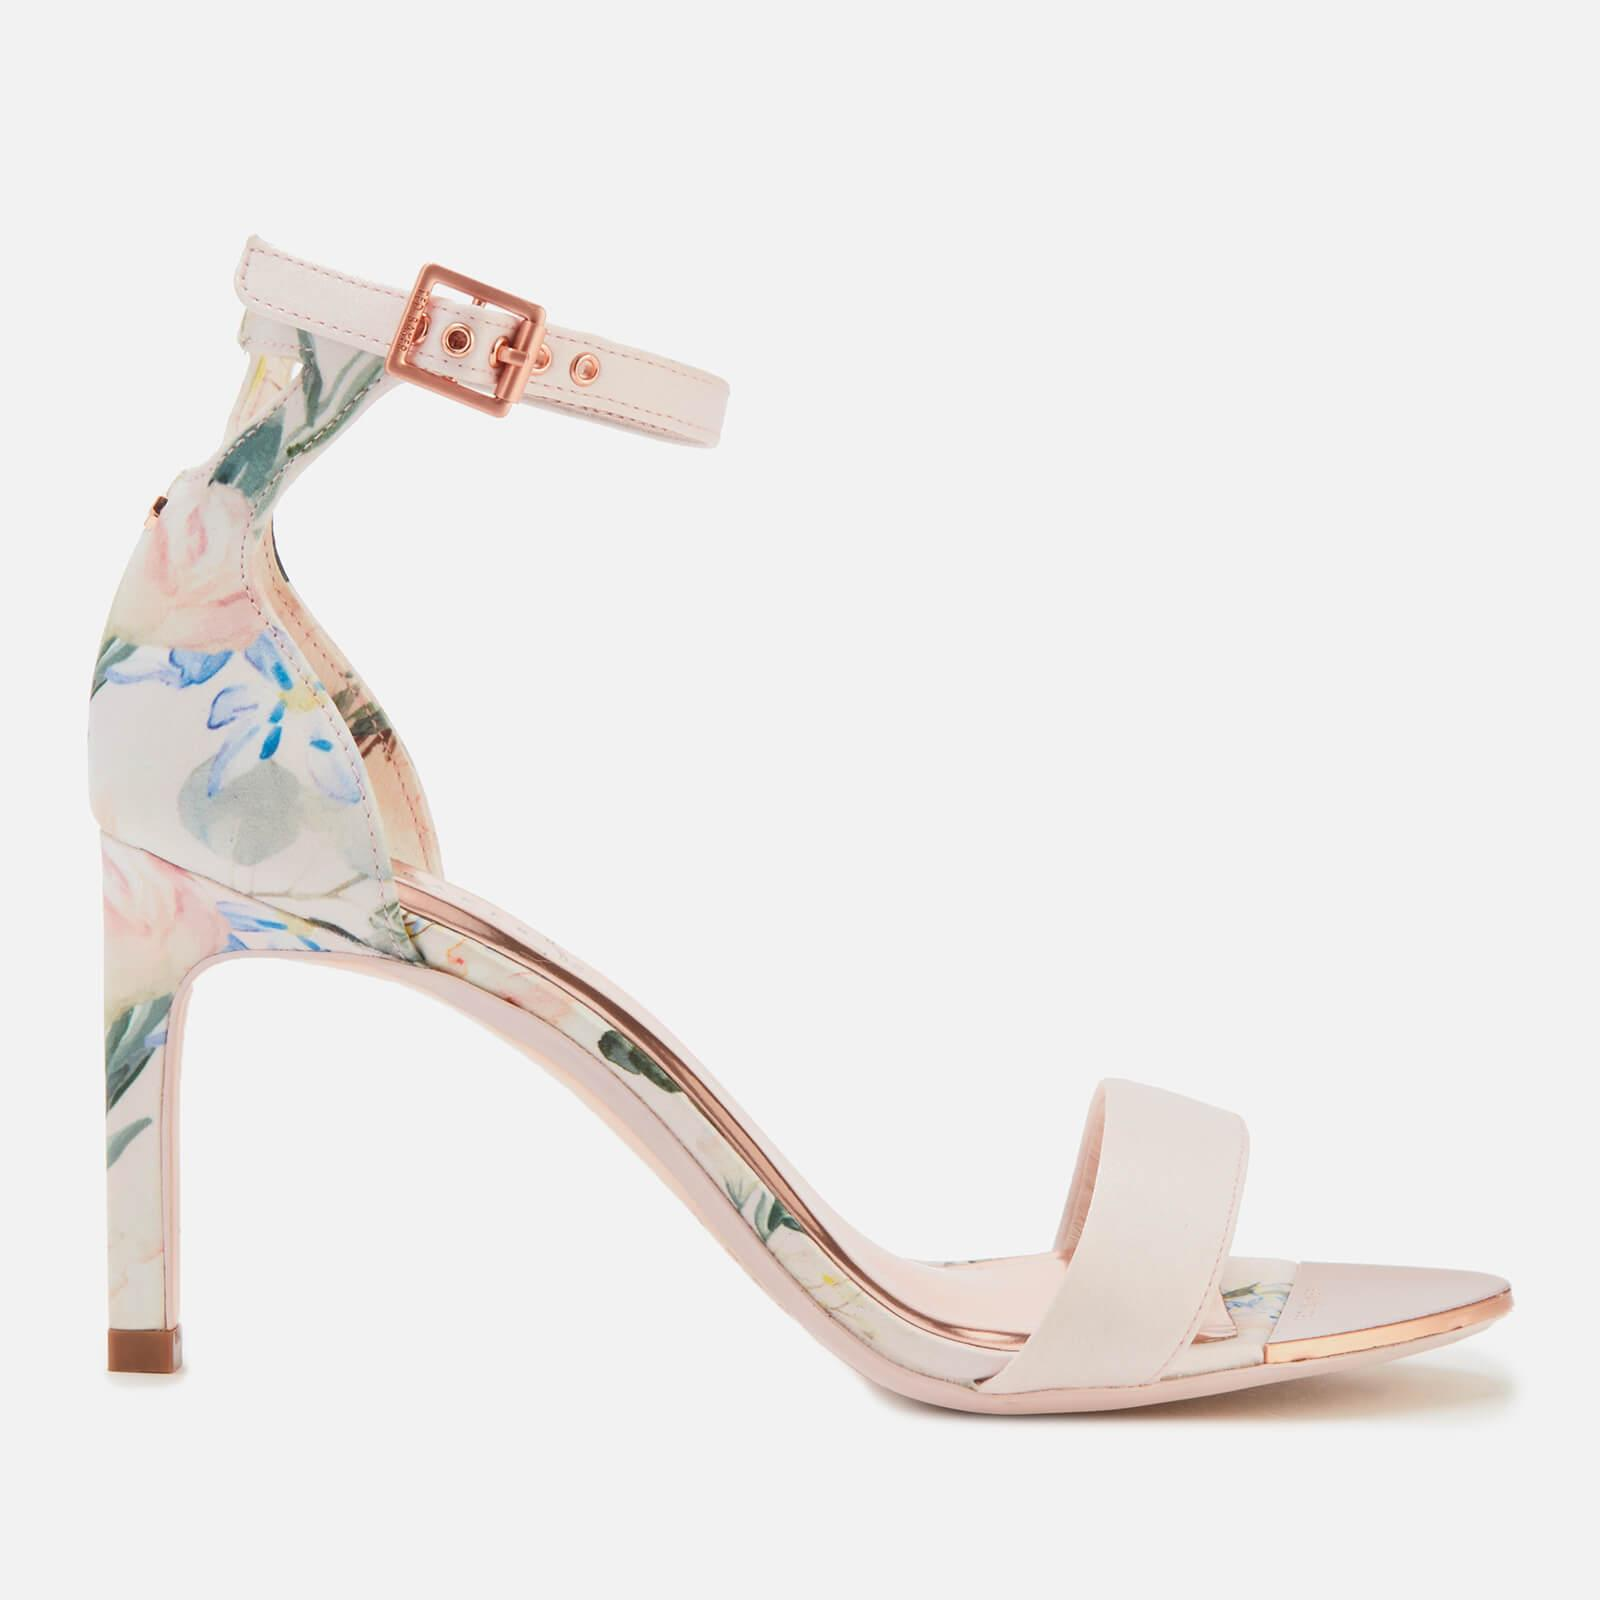 9dc203475 Lyst - Ted Baker Ulaniip Satin Barely There Heeled Sandals in Pink